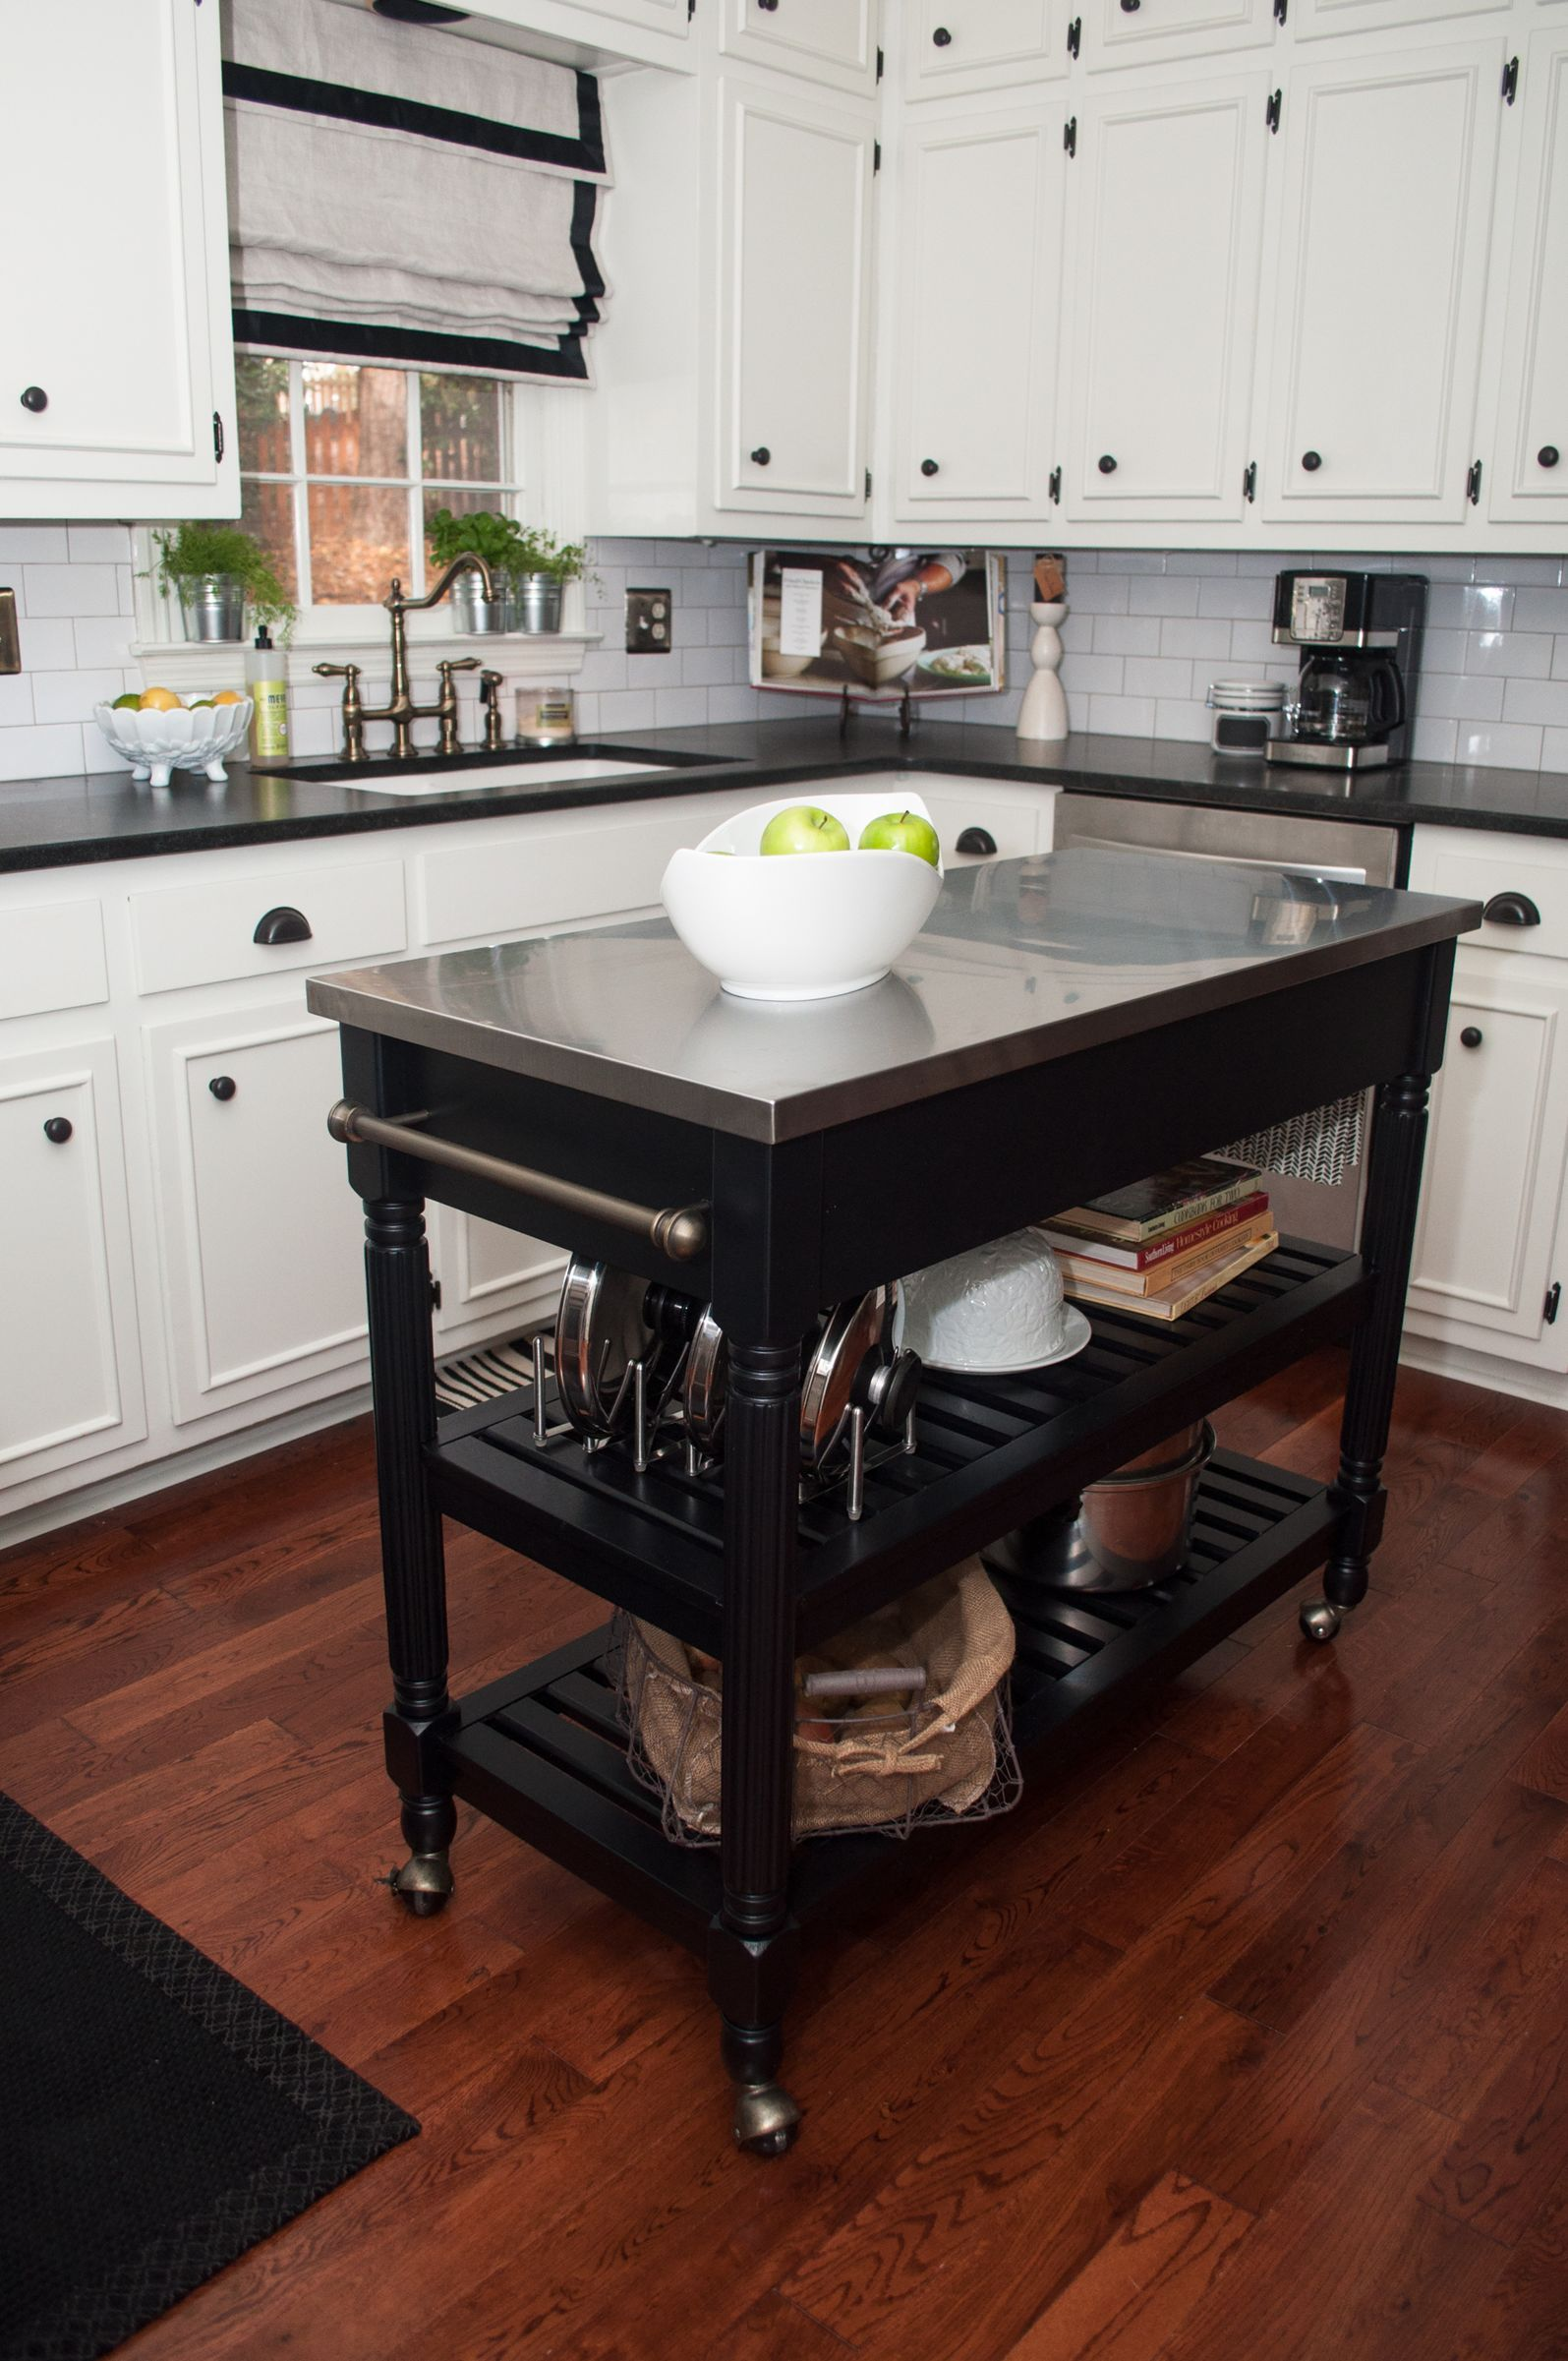 11 Types Of Small Kitchen Islands Carts On Wheels 2021 Kitchen Remodel Small Kitchen Design Small Kitchen Island On Wheels